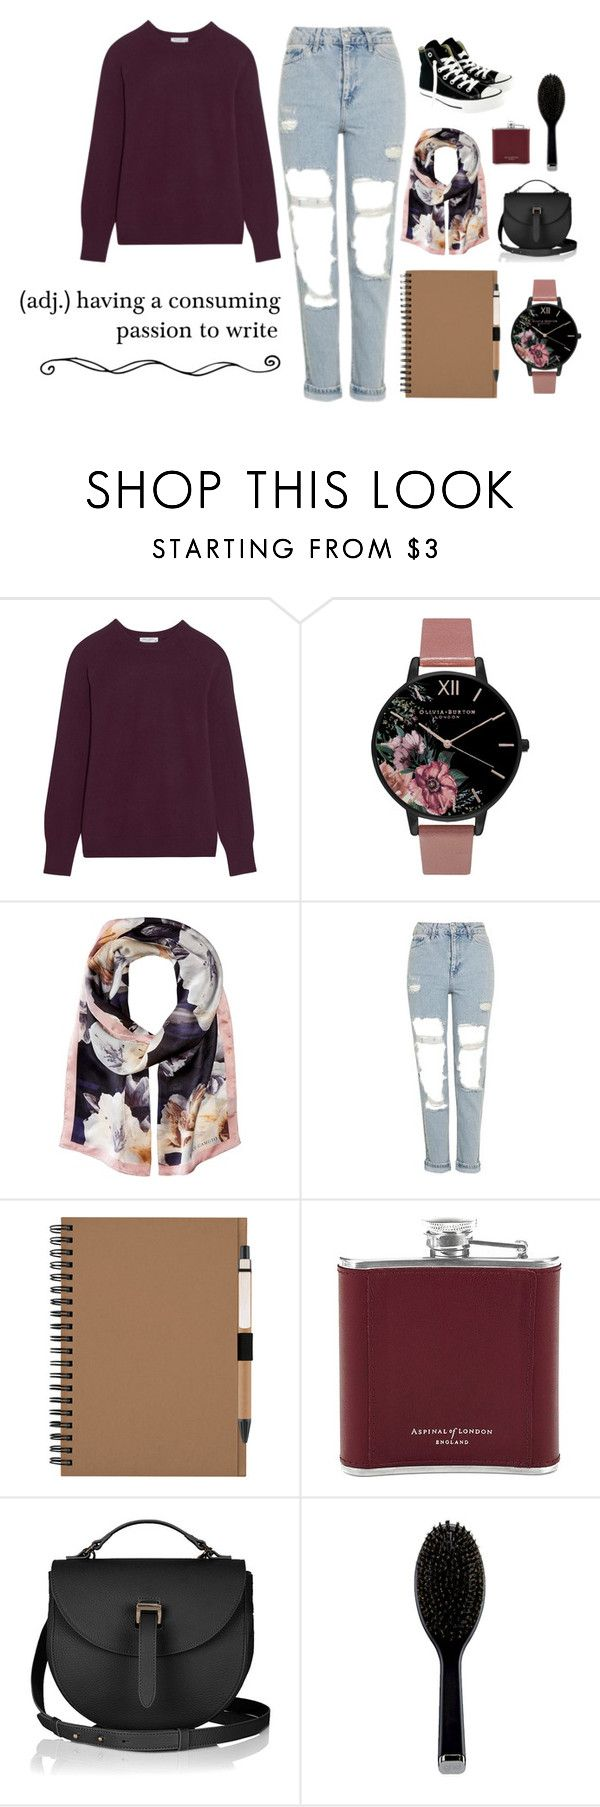 """""""SCRIPTURIENT"""" by ca-nunn on Polyvore featuring moda, Equipment, Olivia Burton, Vince Camuto, Topshop, Aspinal of London, GHD e Converse"""